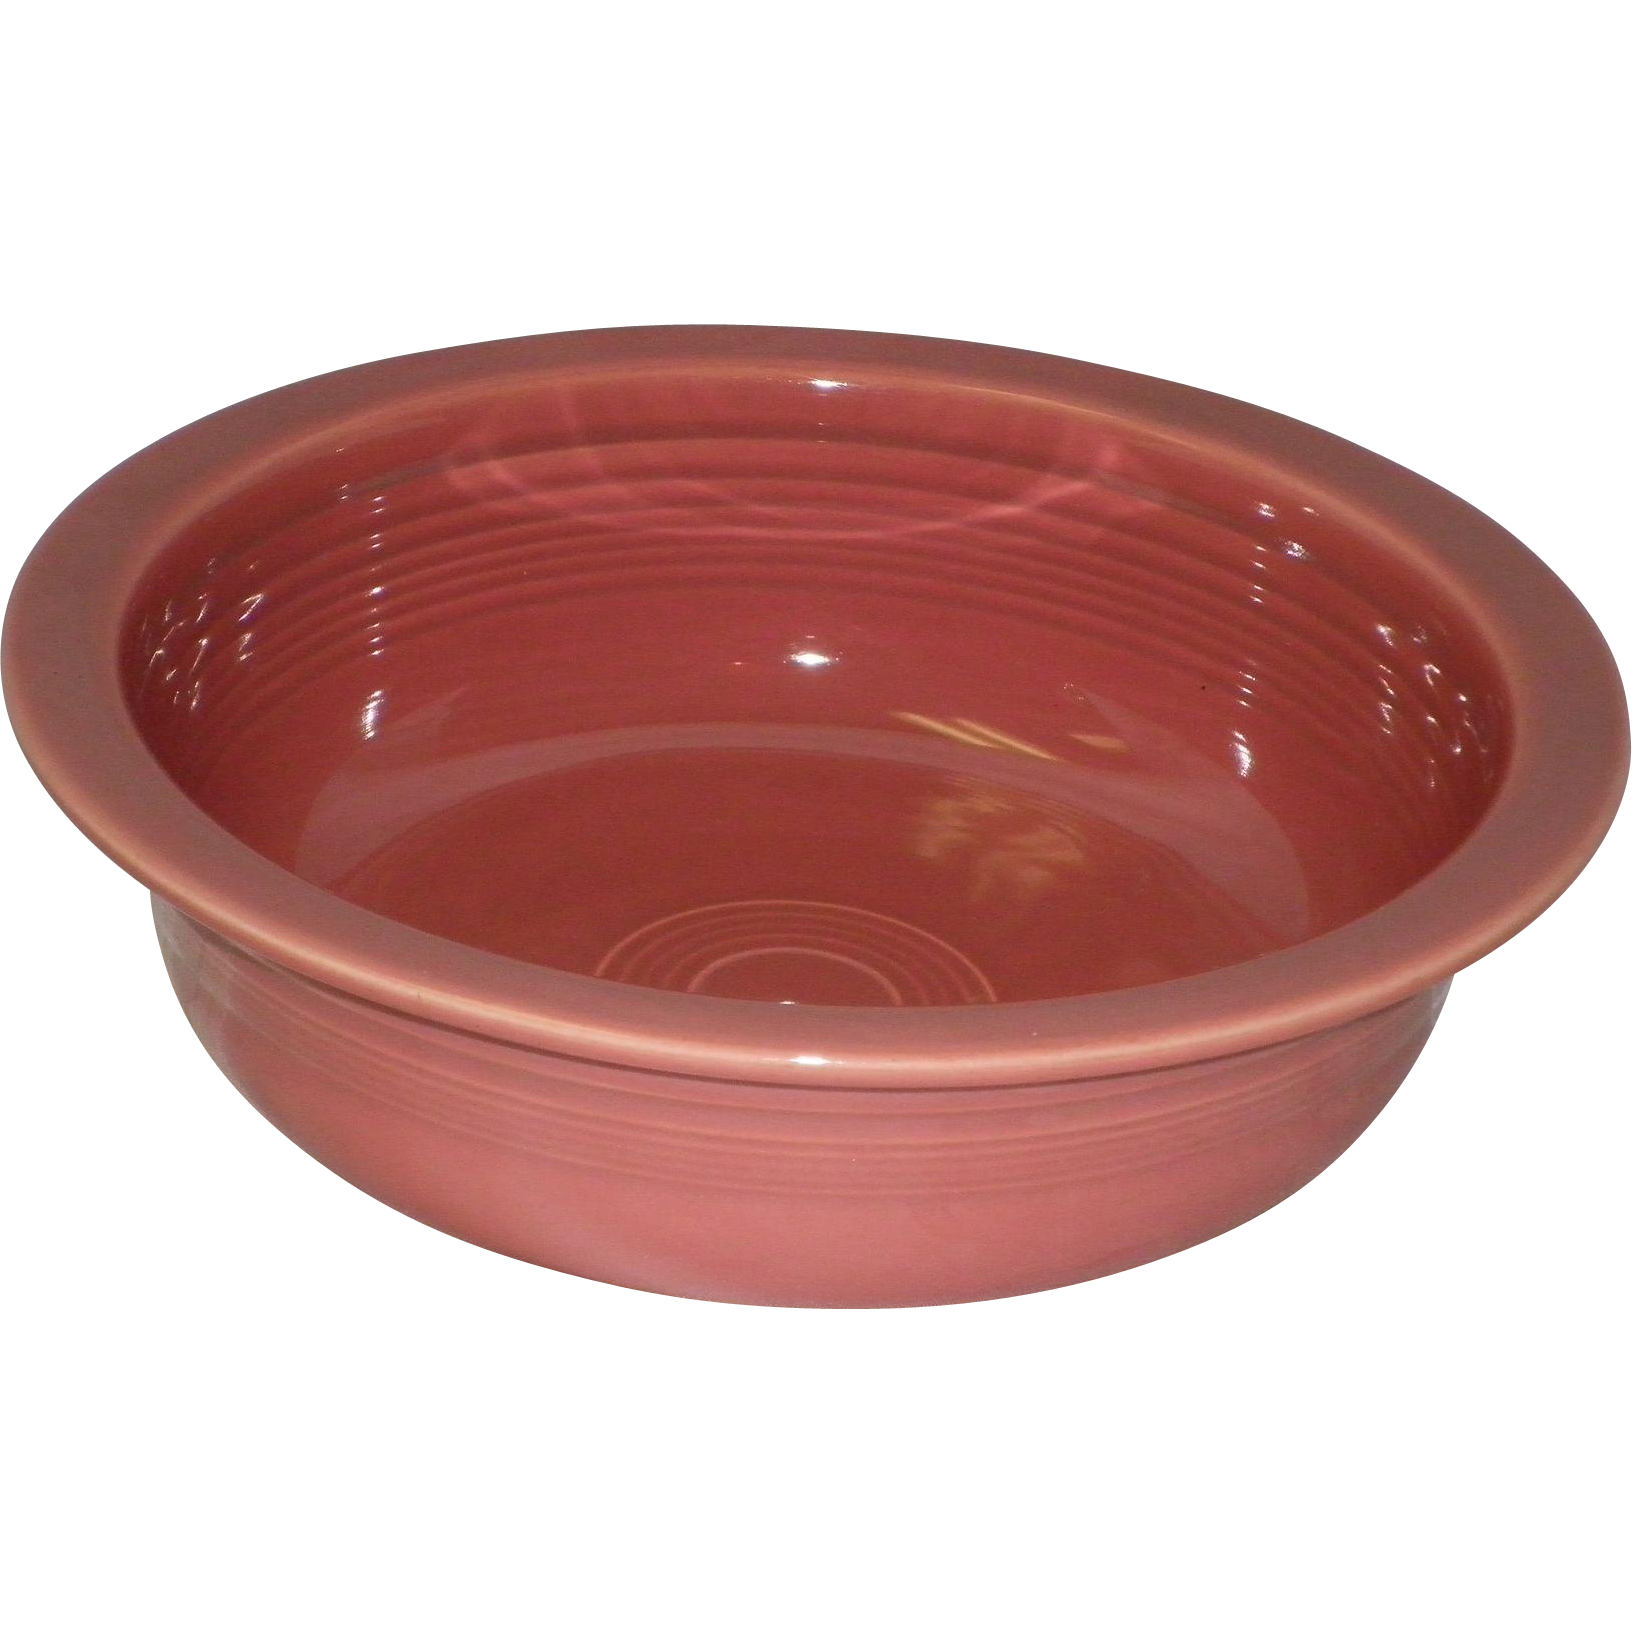 "Fiesta 8 1/2"" Rose Bowl"